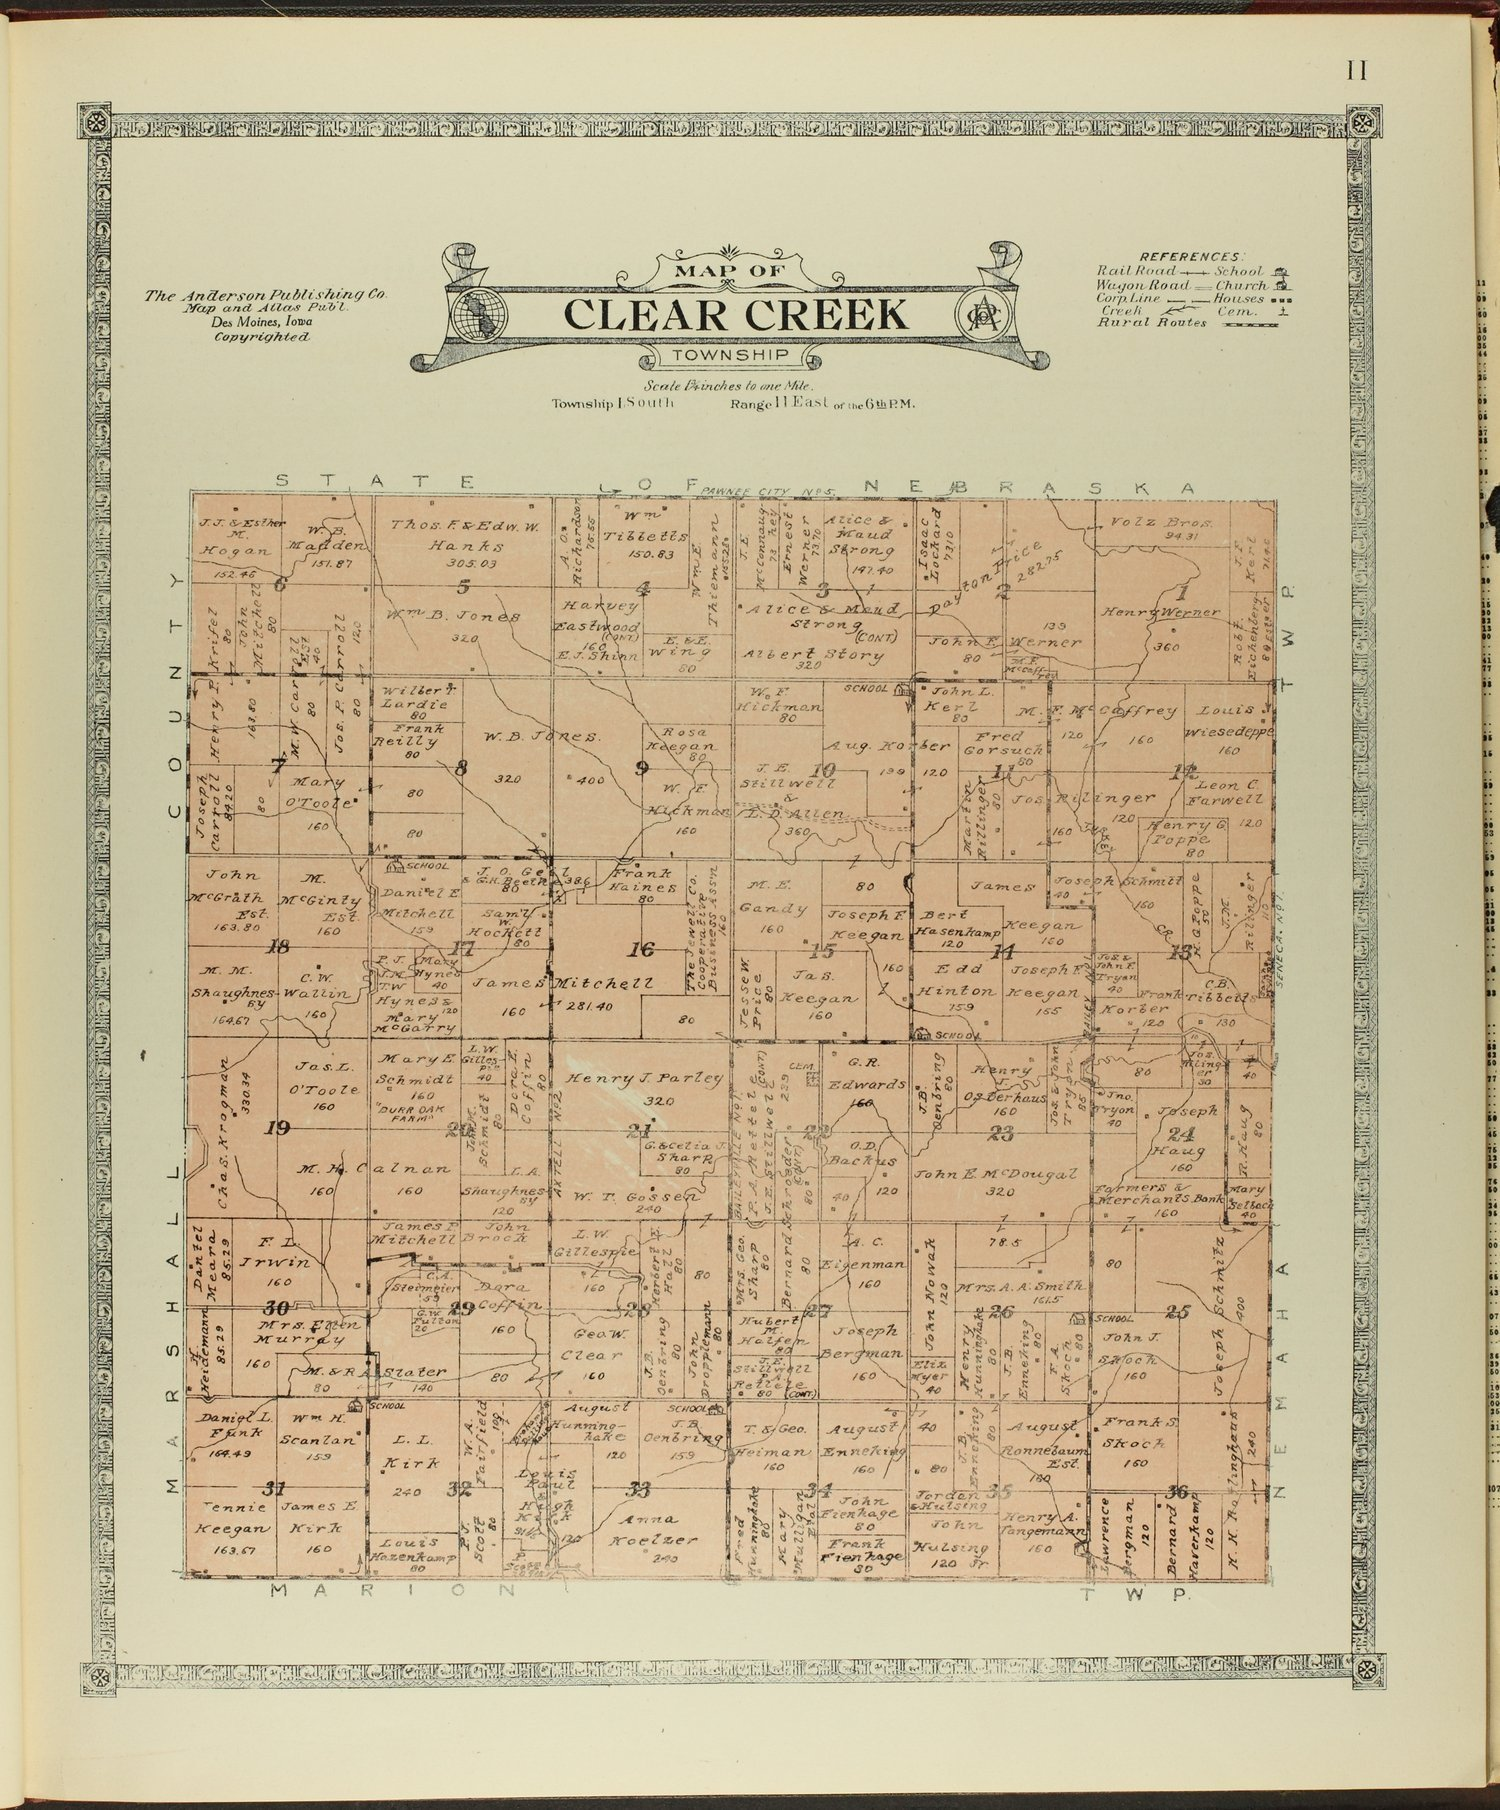 Atlas of Nemaha County, Kansas - 11